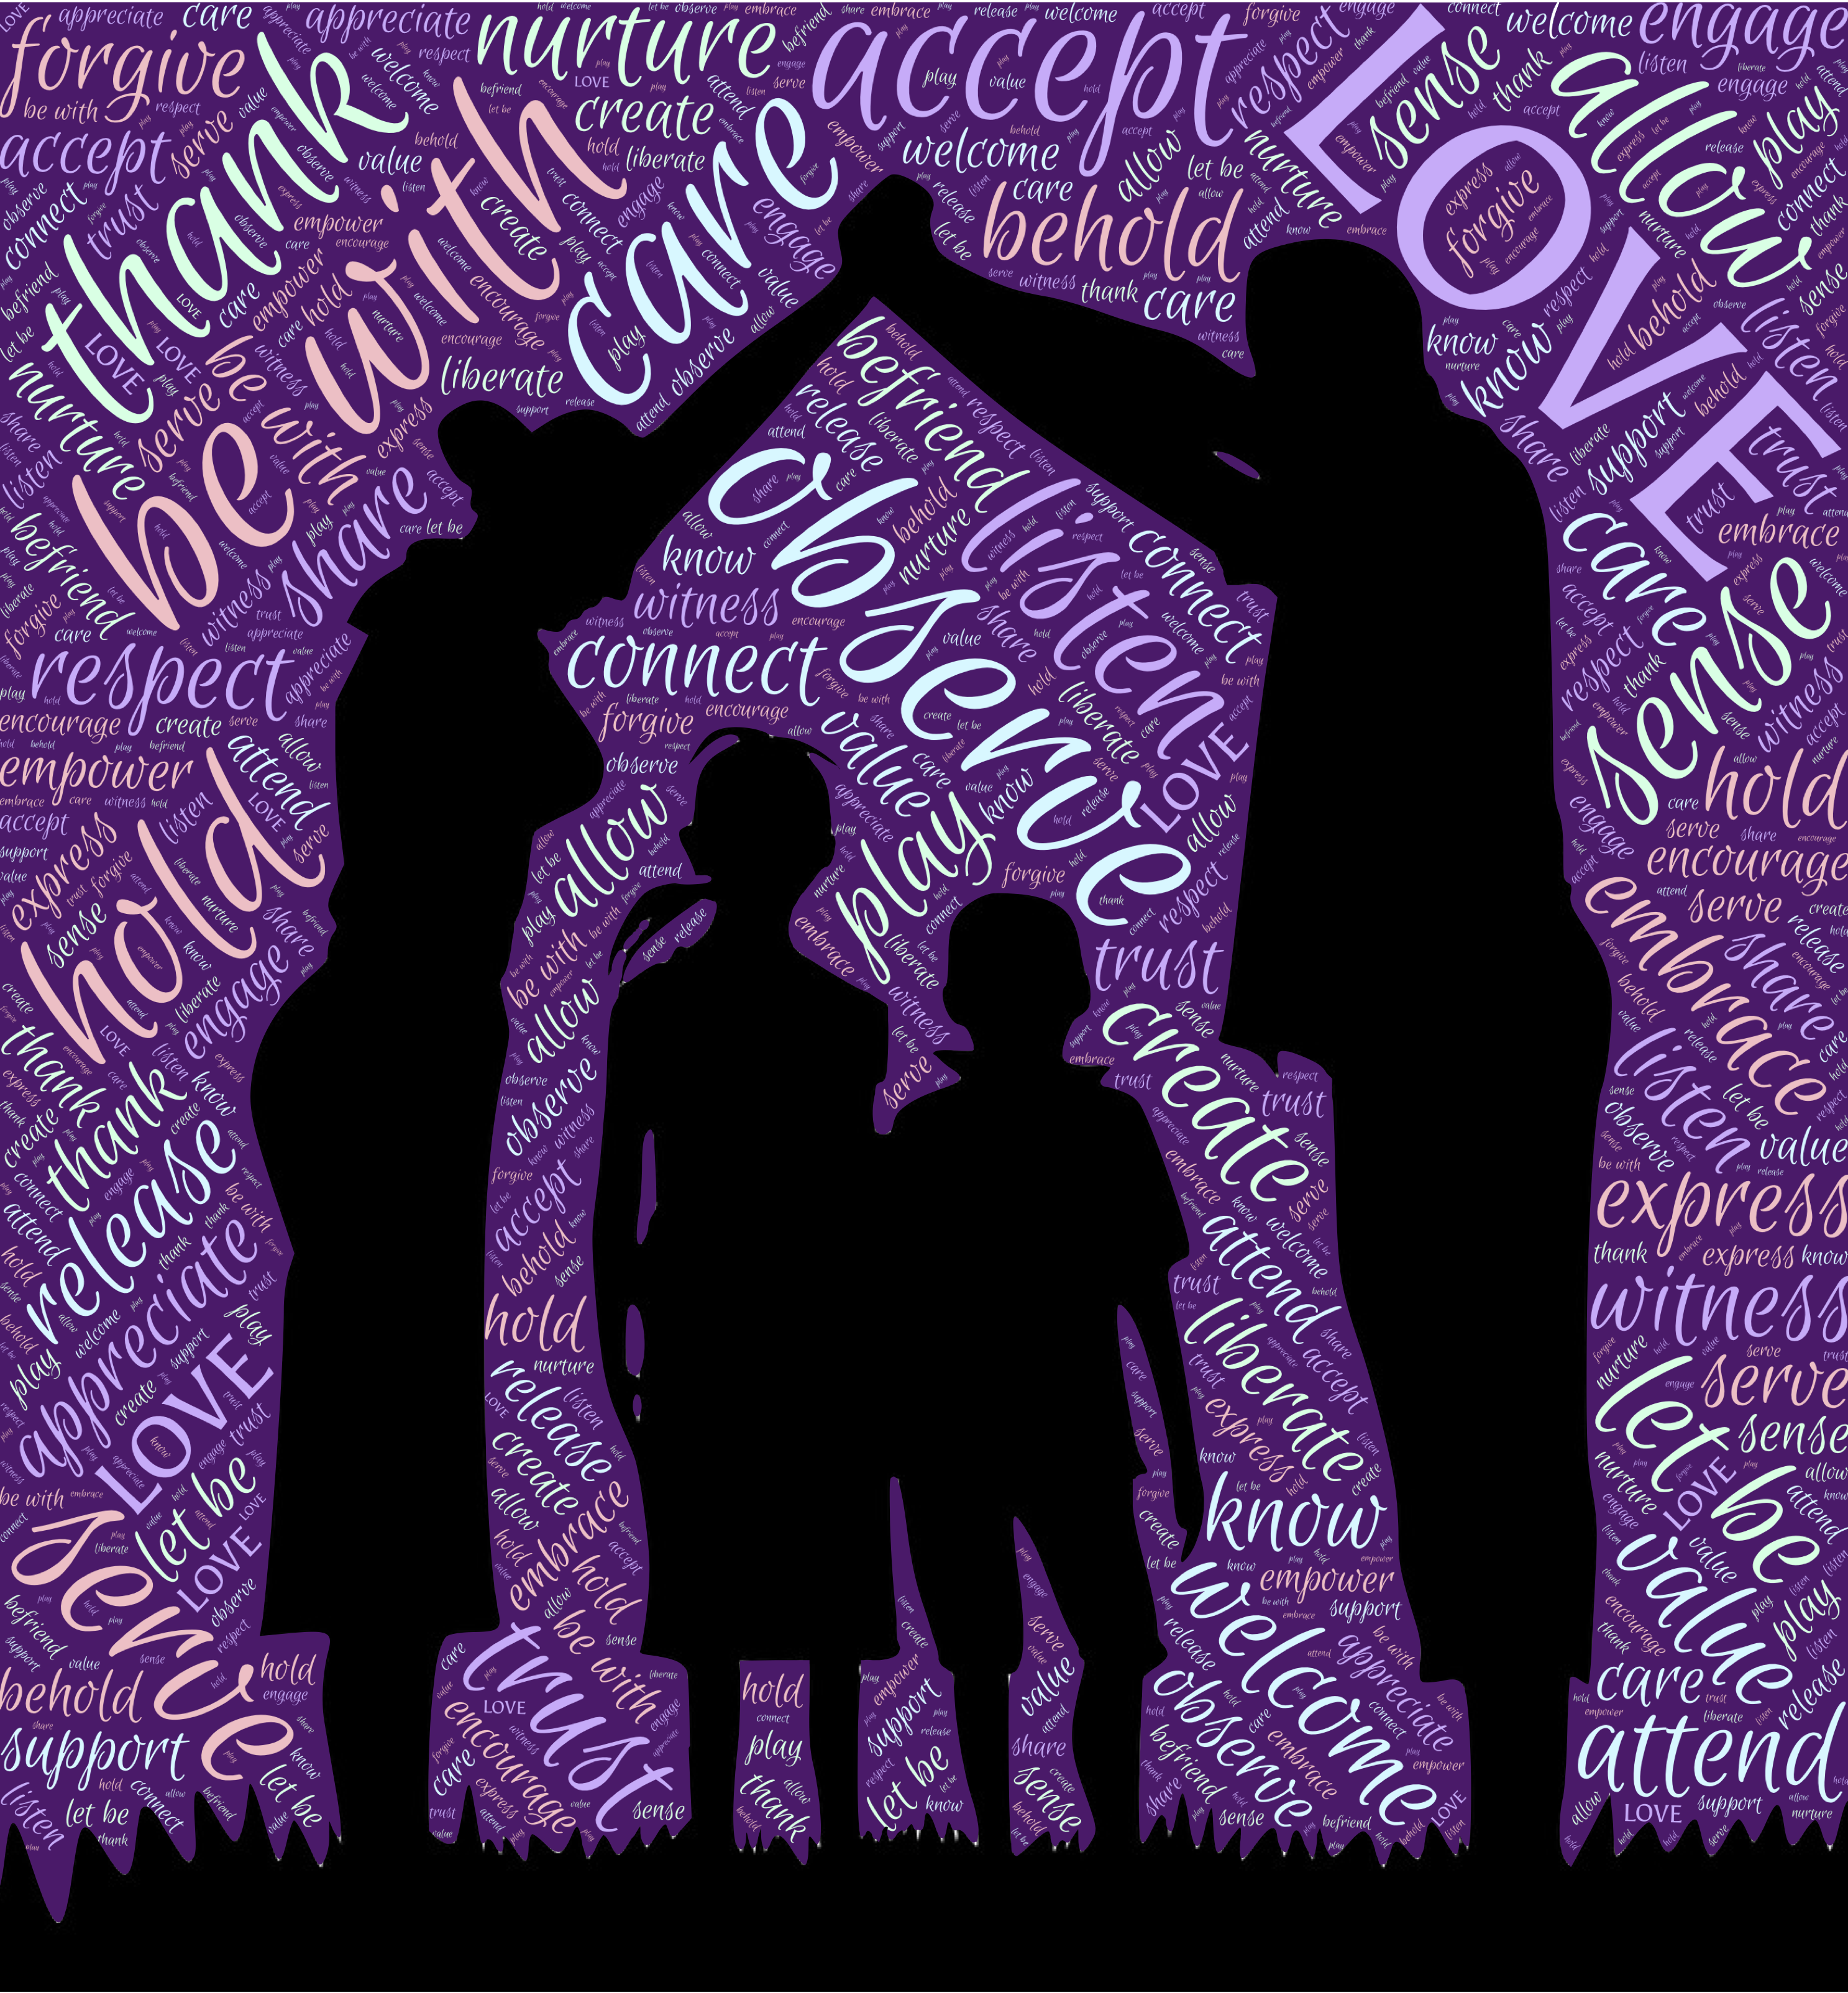 Parenting Styles that Don't Work with An Autistic Child